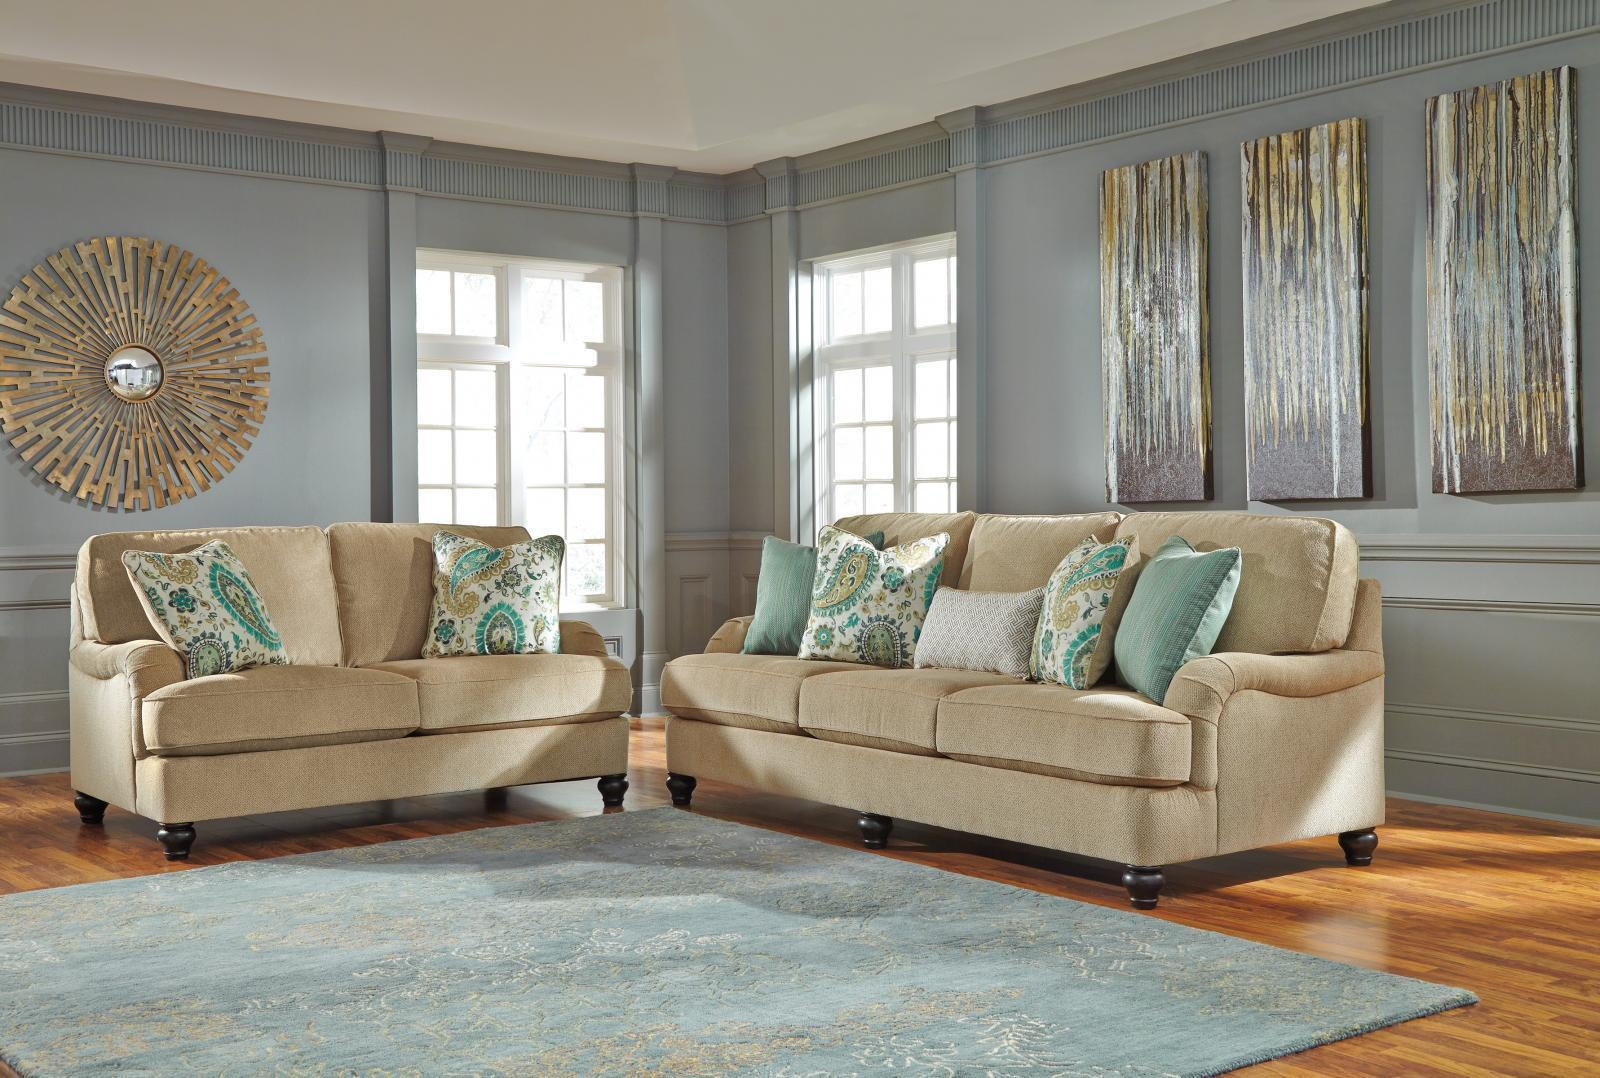 Ashley Lochian Living Room Set 2pcs in Bisque Upholstery Fabric Casual Style